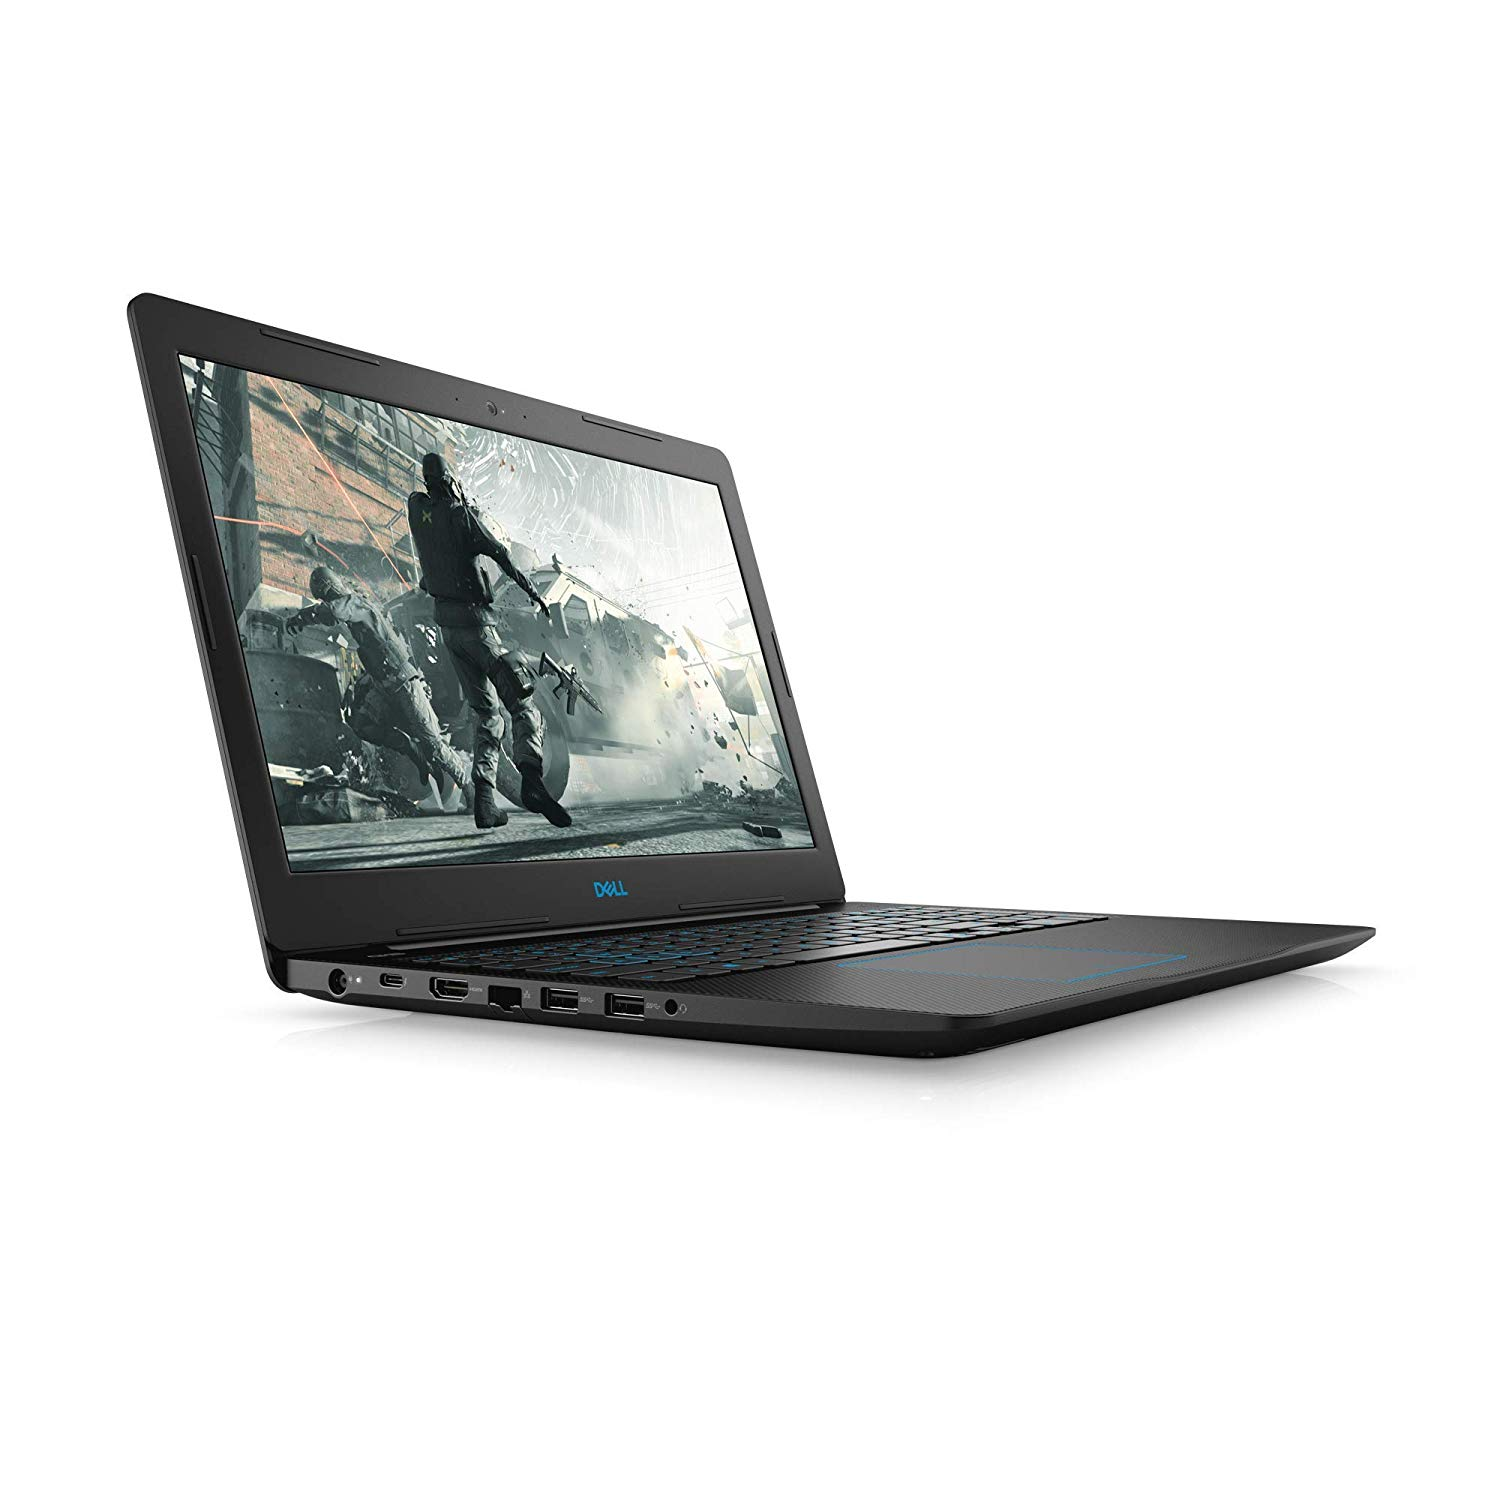 Notebook Dell G3 3579 Core I7 8750H Memoria 8Gb Hd 1Tb Placa Video Gxt1050 4Gb Tela 15.6' Fhd Sistema Linux